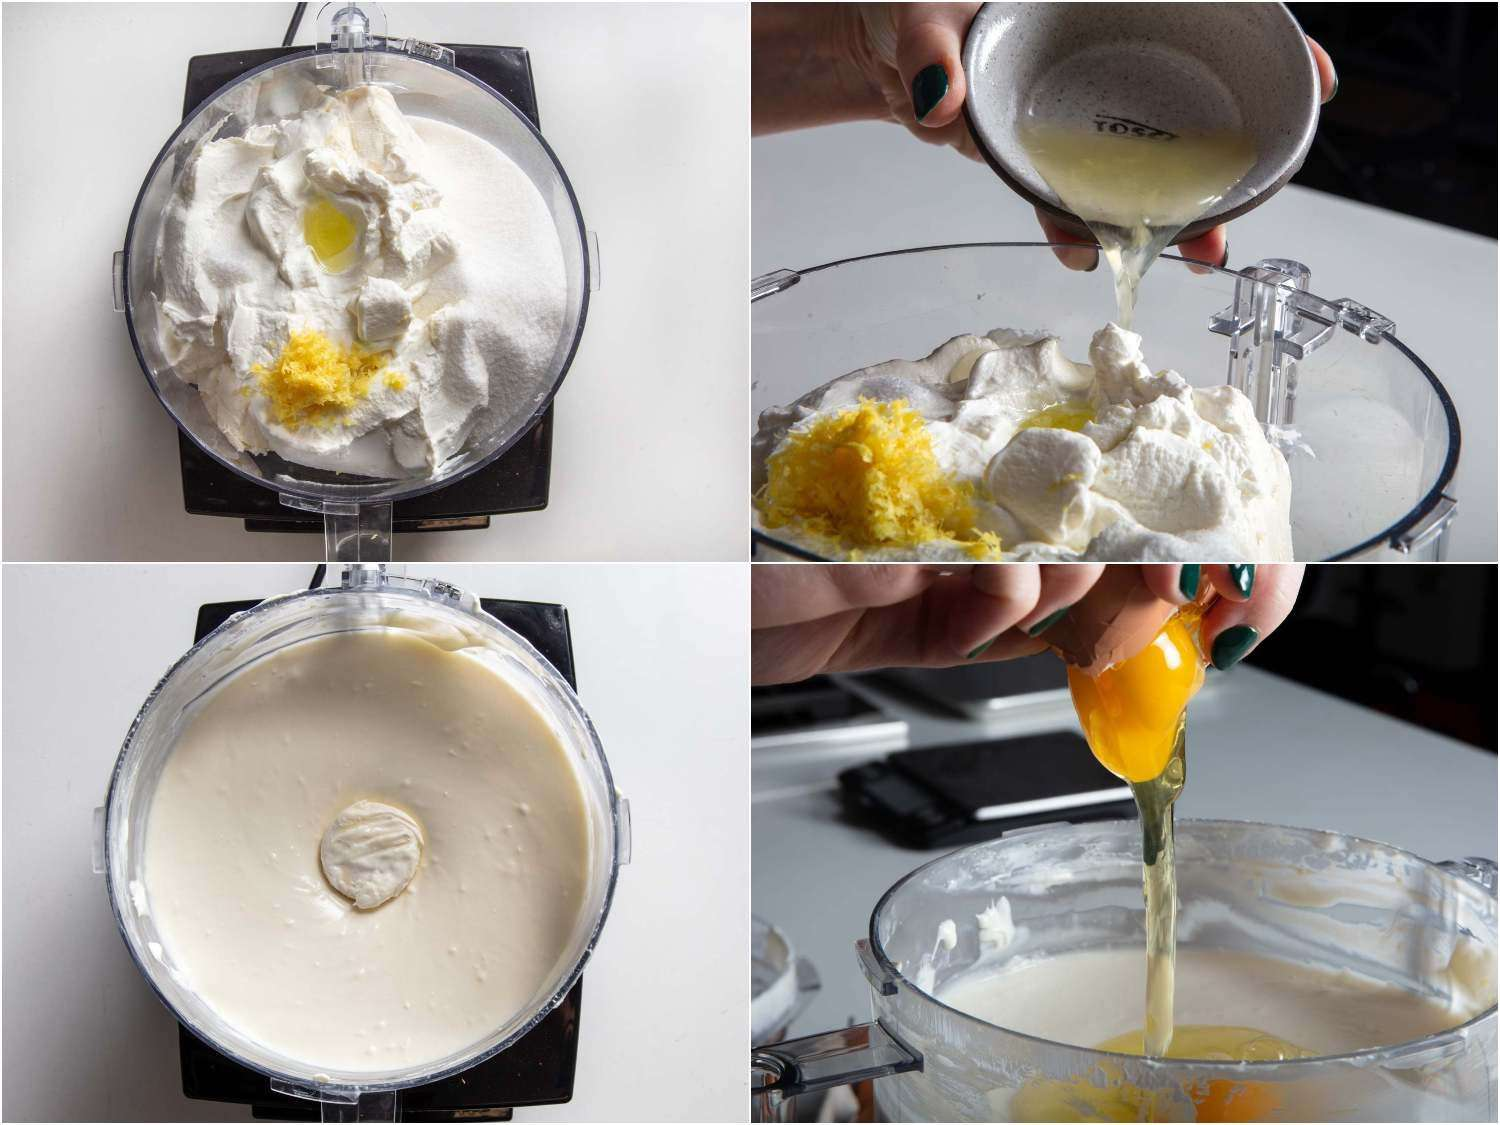 Preparing the cheesecake batter in a food processor